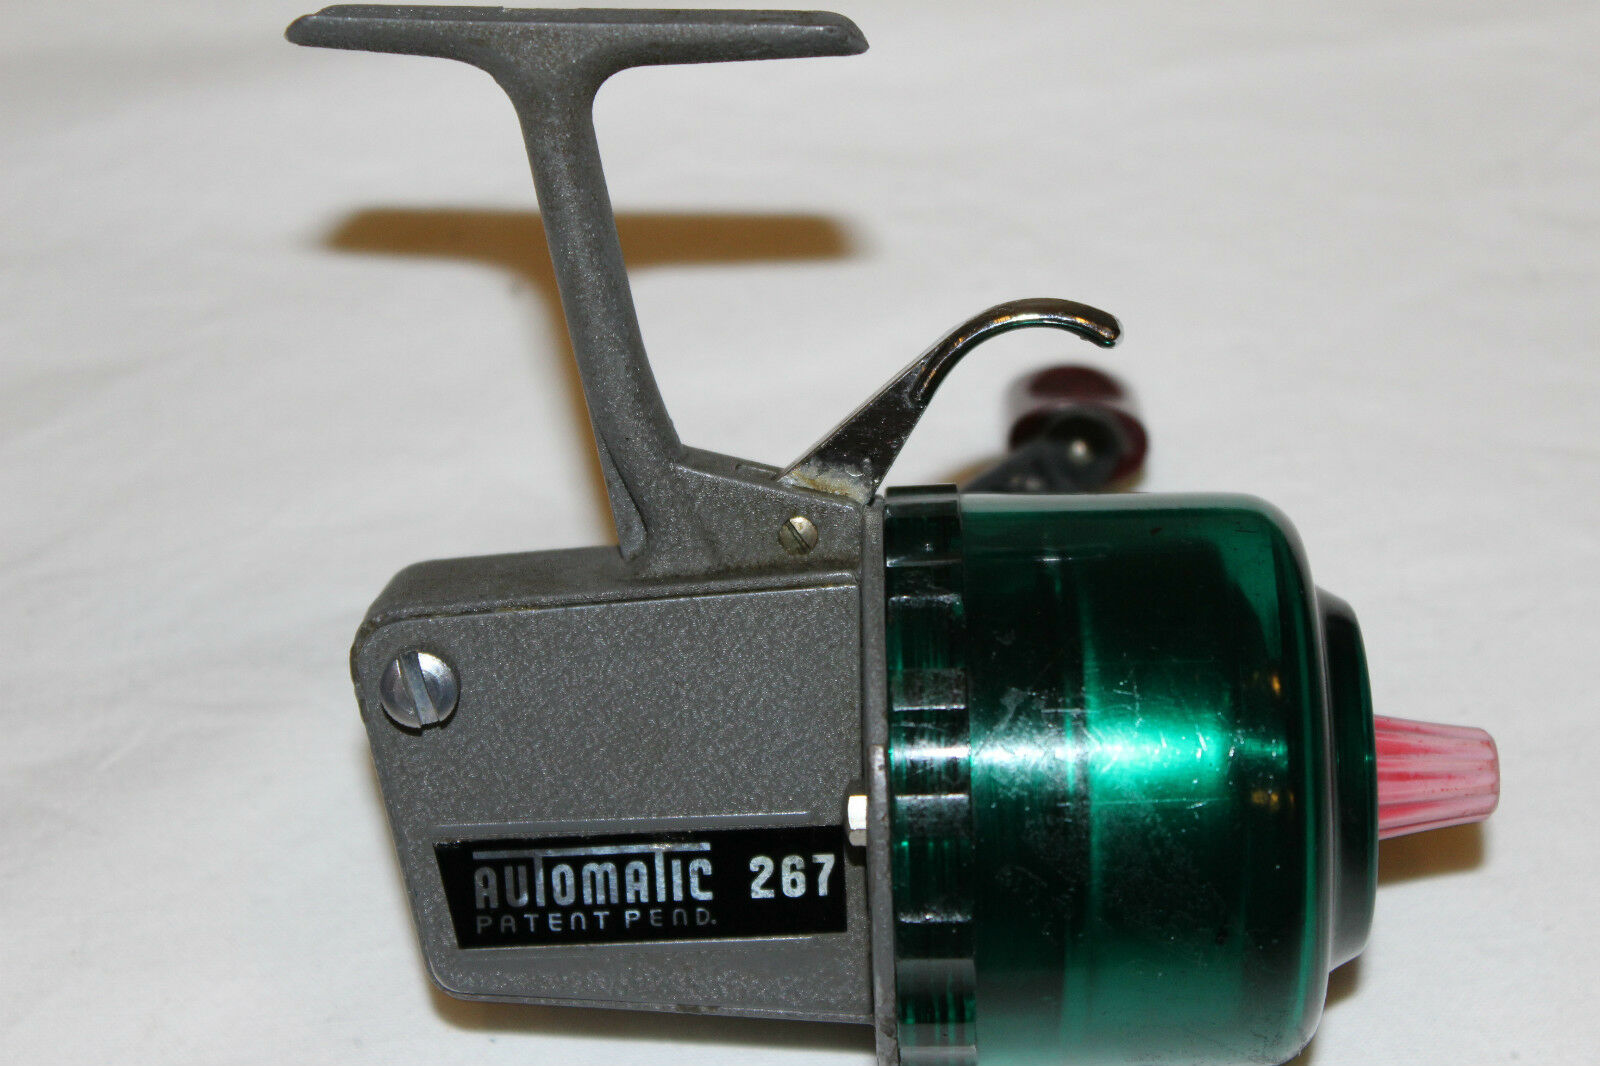 Dam Quick Automatic 267  - Made in West Germany-N. 5